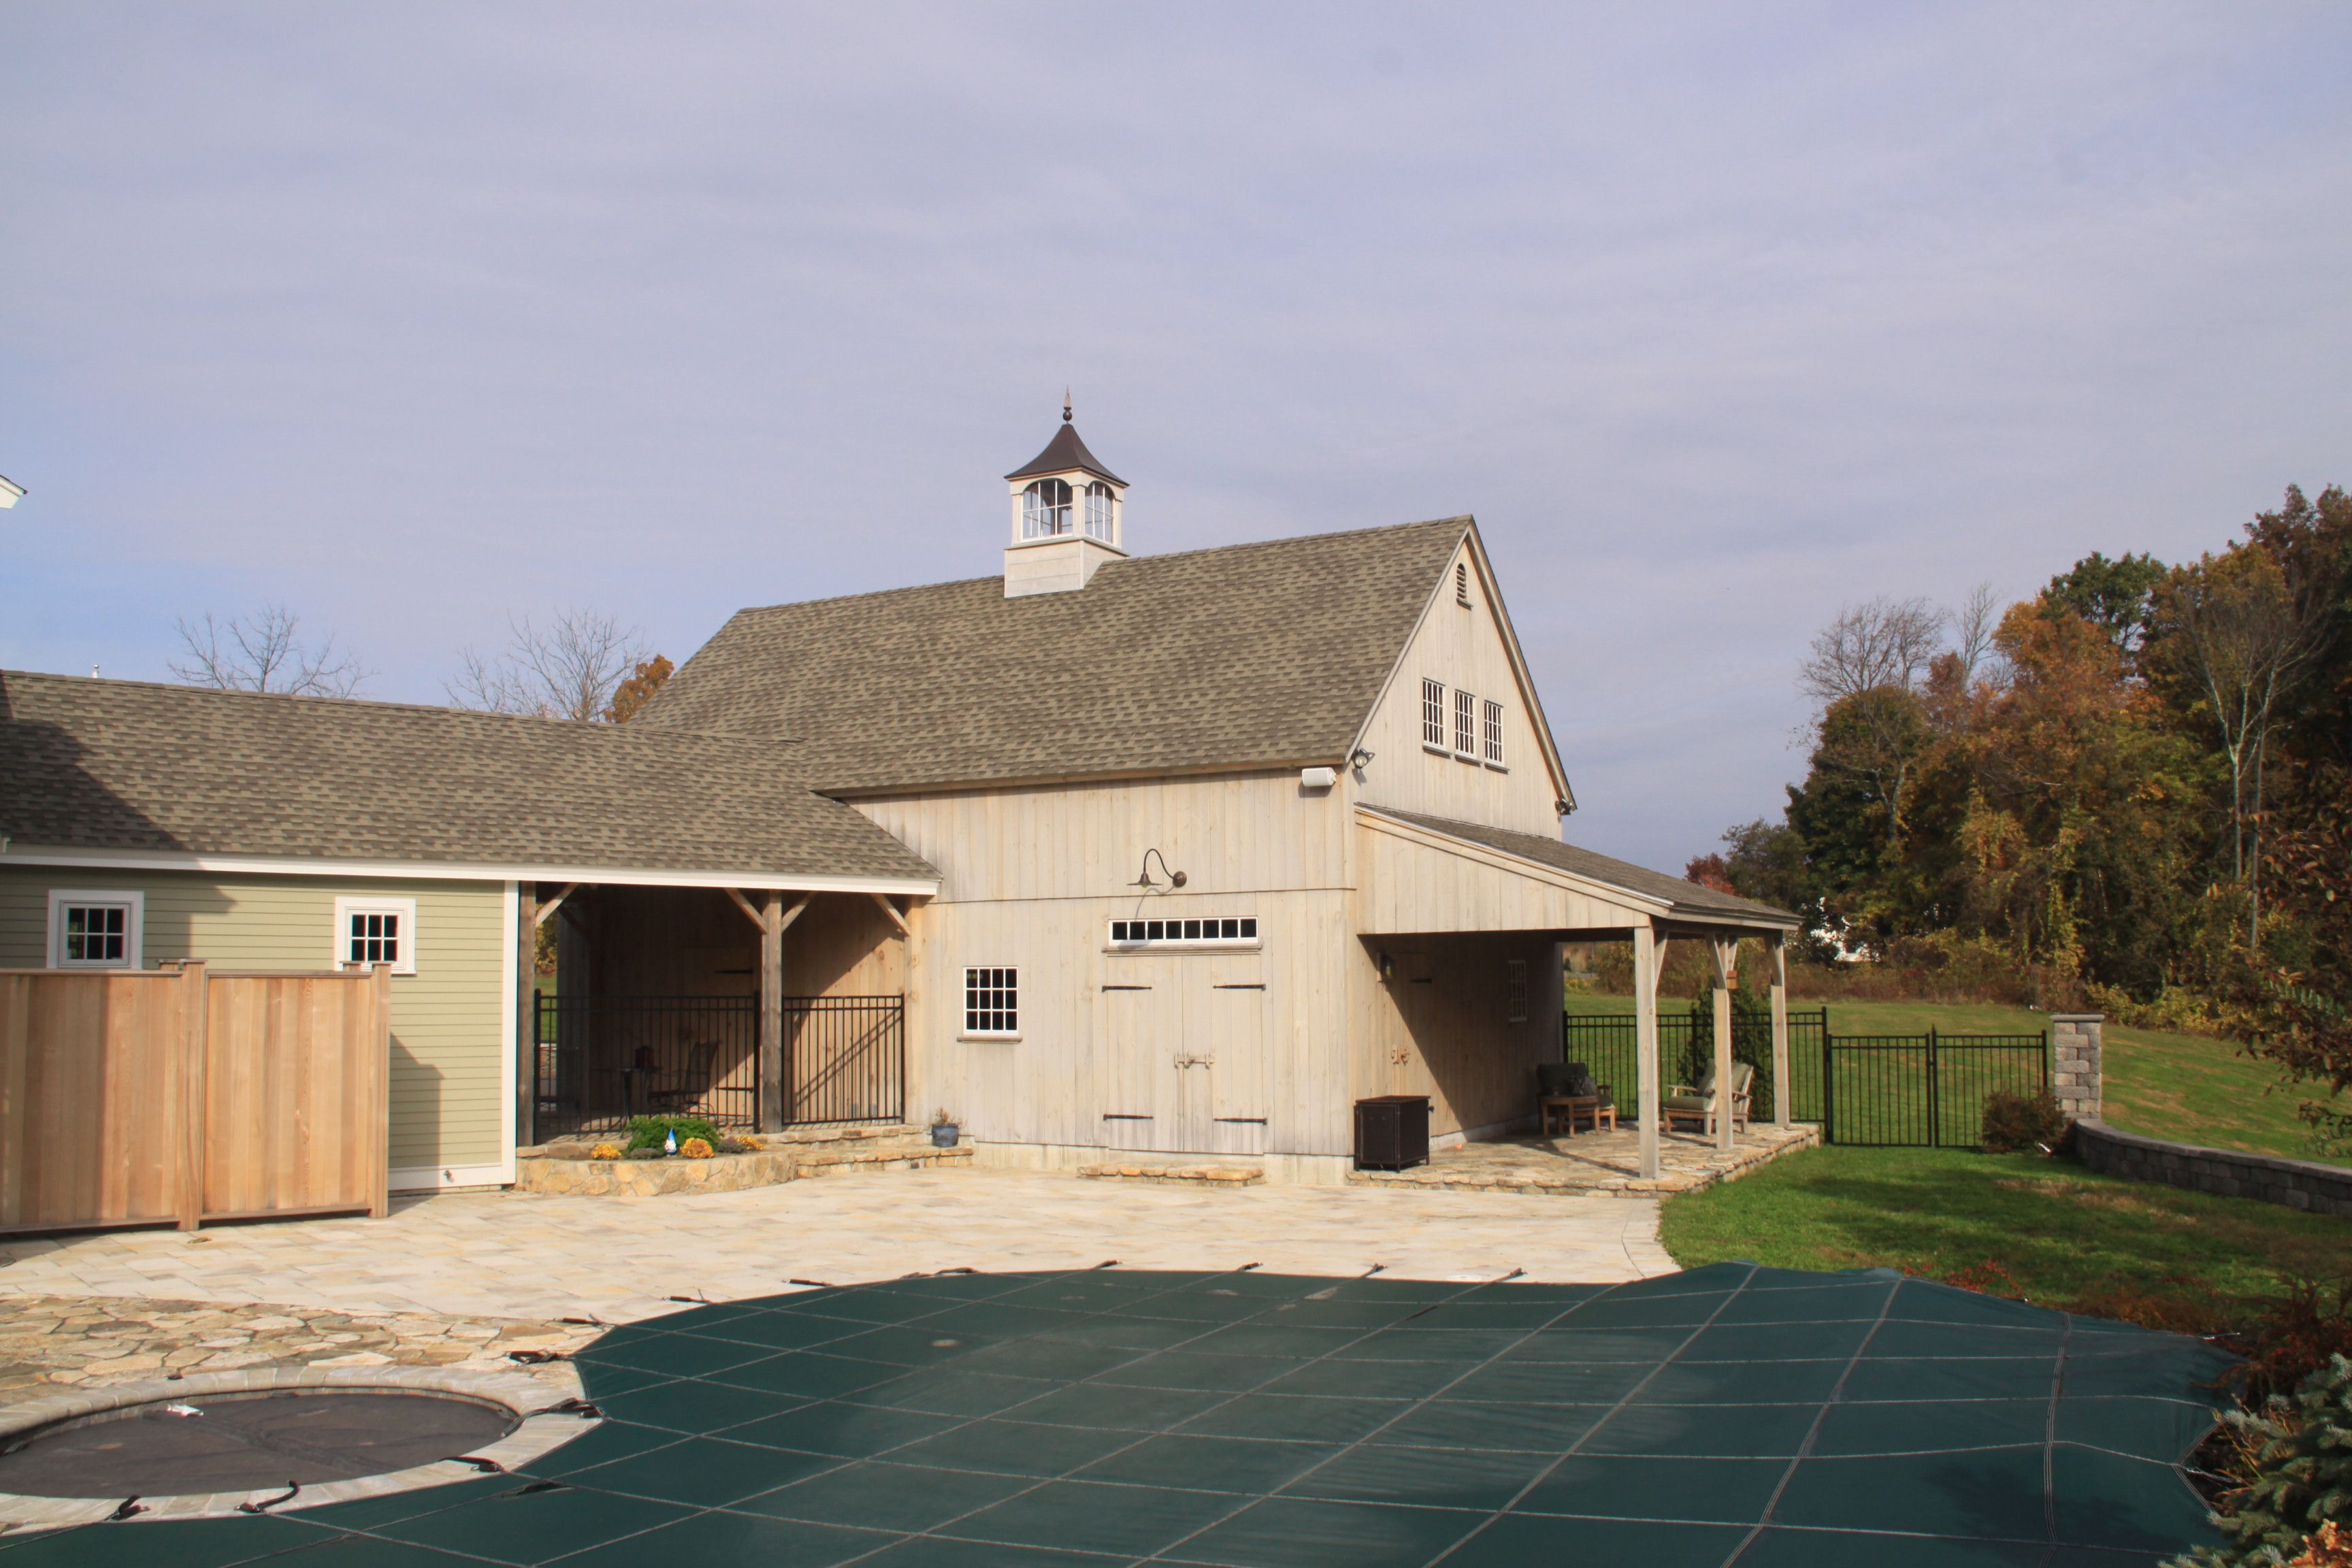 Vintage timber frame barn addition farmhouse exterior burlington - Our 24 X 36 1 1 2 Story Barn With 10 X 24 Enclosed Lean To Www Countrycarpenters Com Larger 1 1 2 Story Barns Pinterest Barn